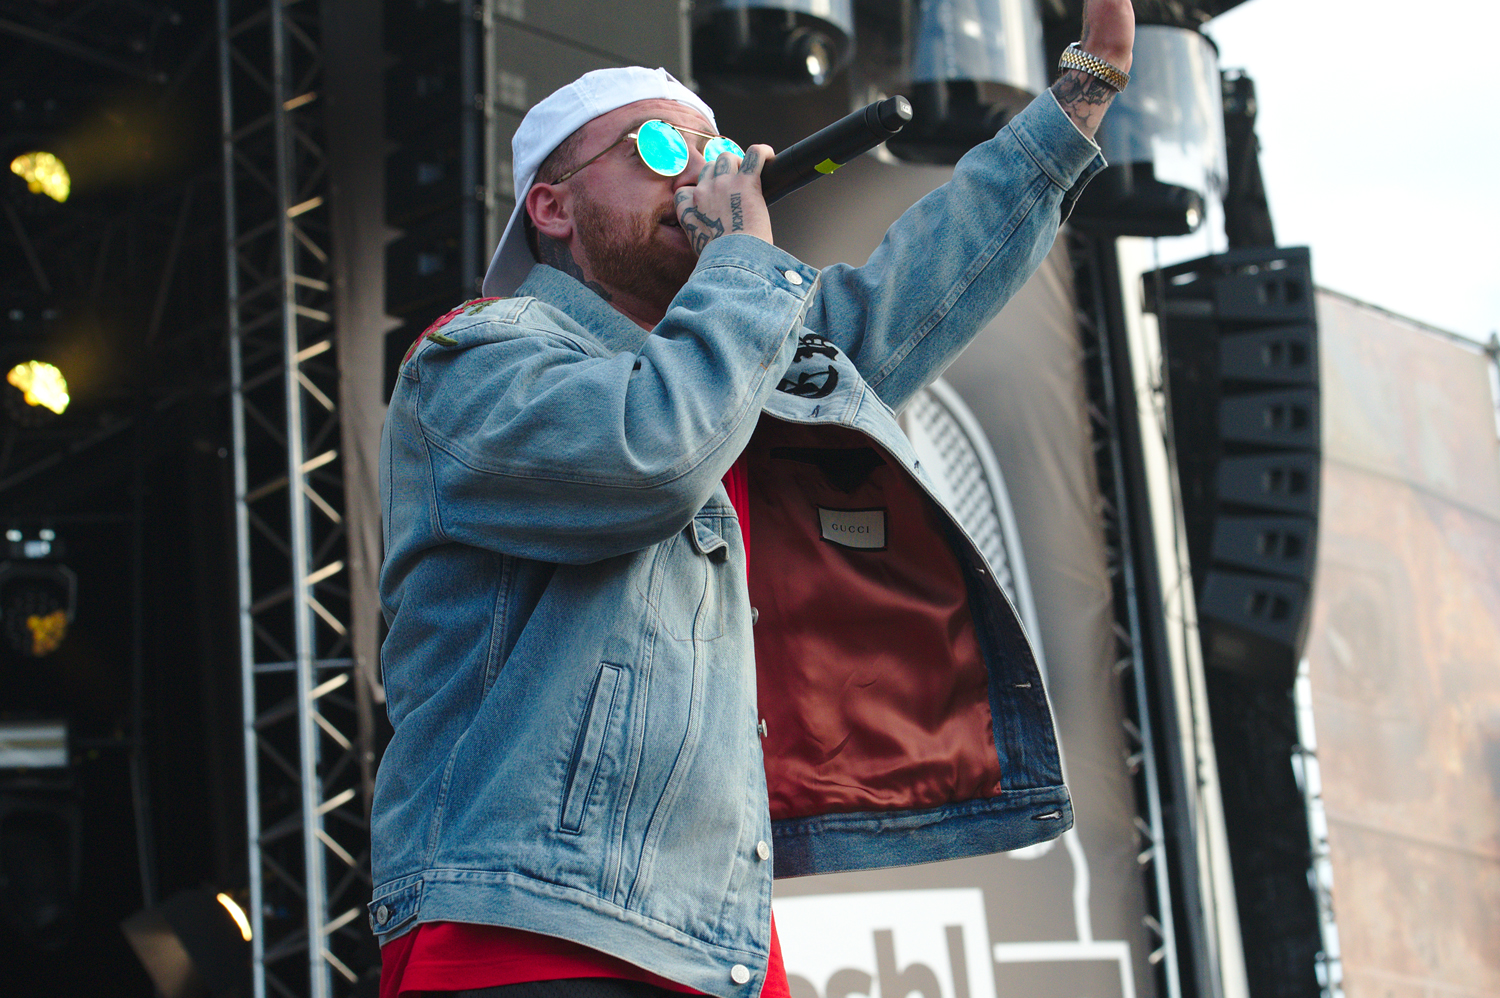 Pittsburgh native rapper Mac Miller performed at Splash! Festival in Germany last year.